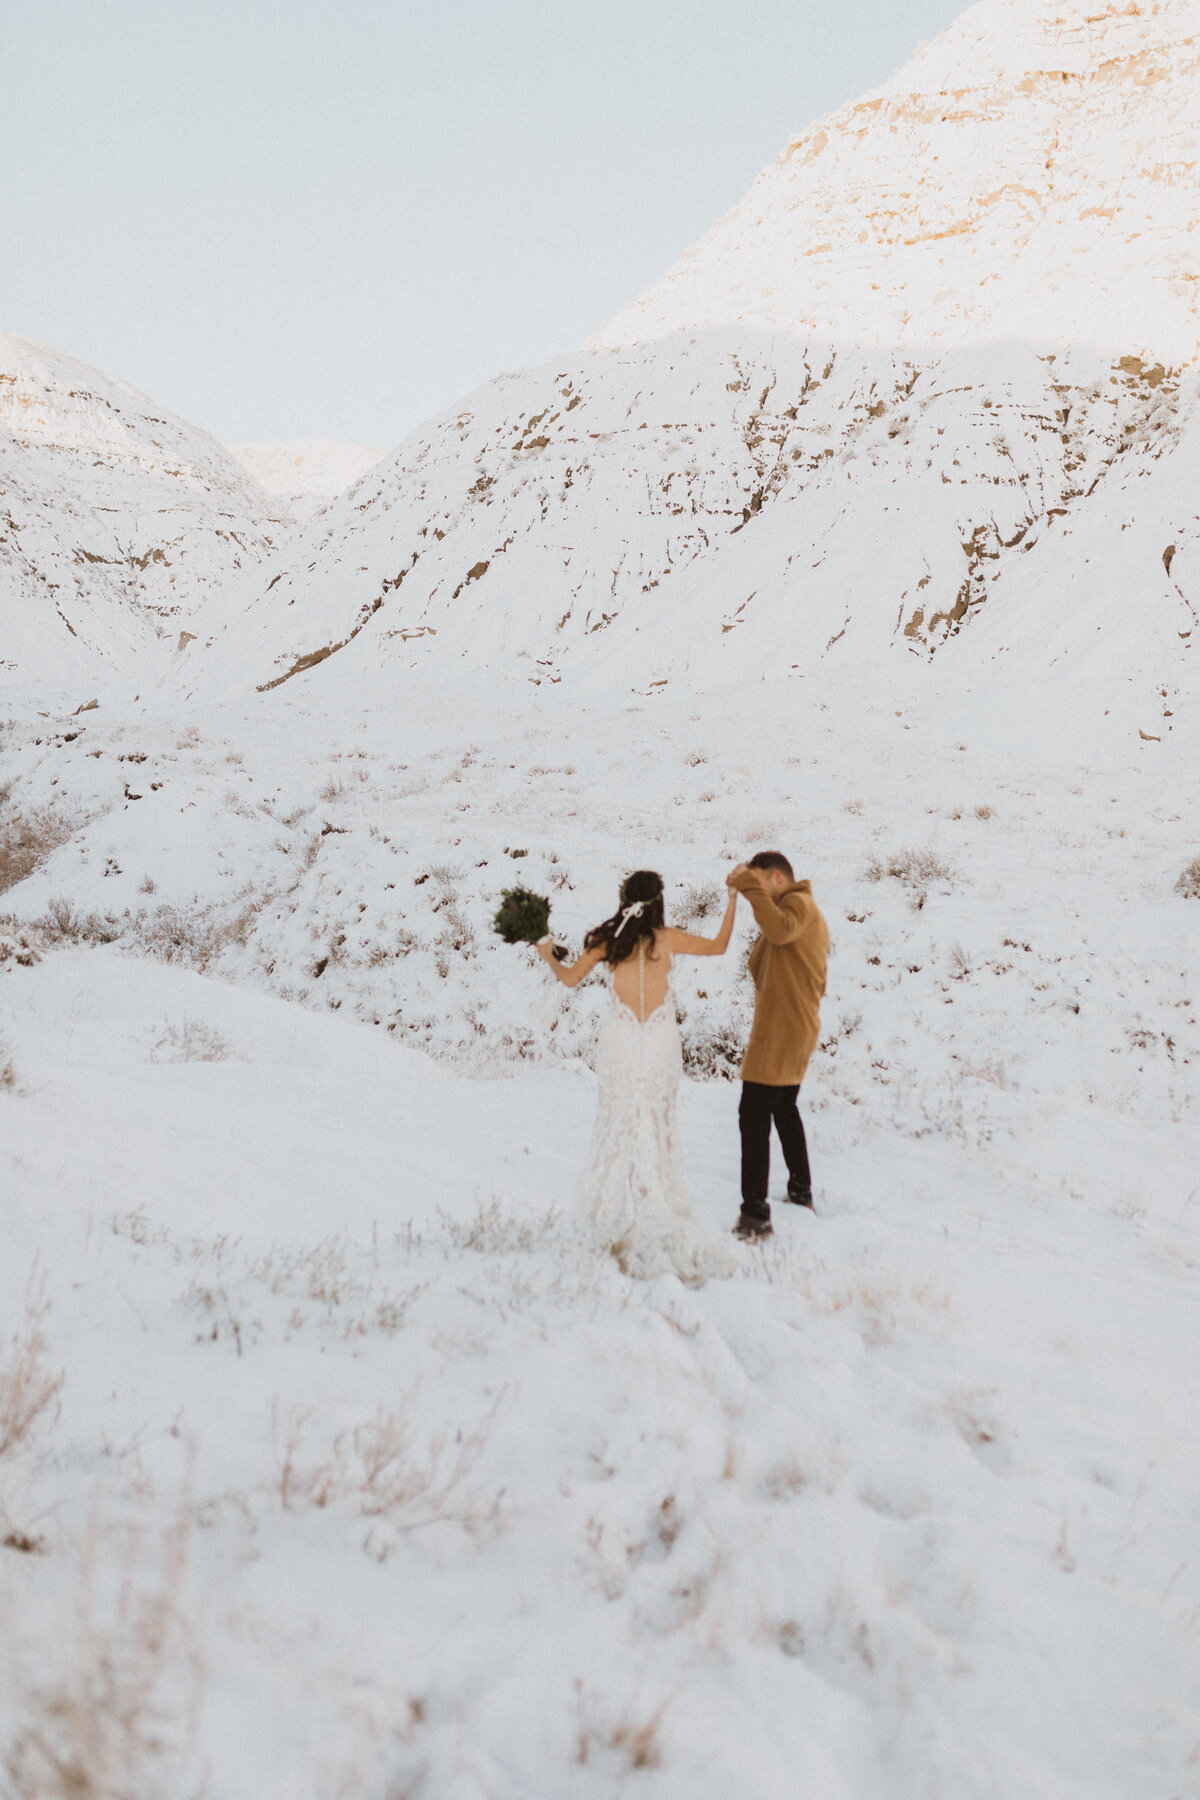 liv_hettinga_photography_drumheller_winter_elopement-19